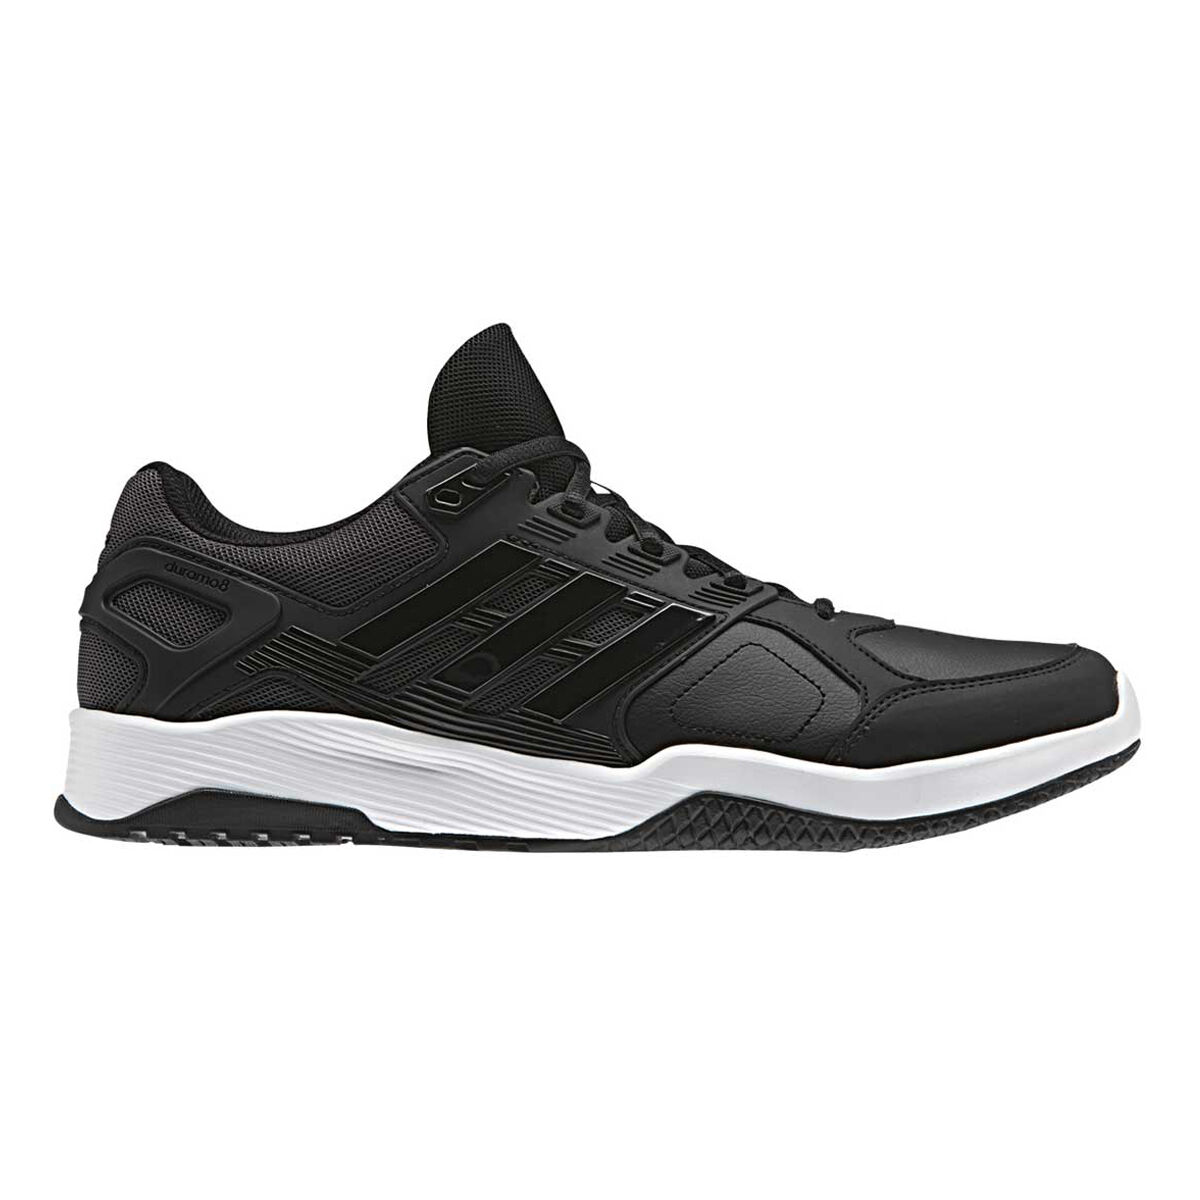 detailed look 73626 7d5ee low price adidas duramo 8 mens training shoes black white us 9.5 black white  143c4 a1651